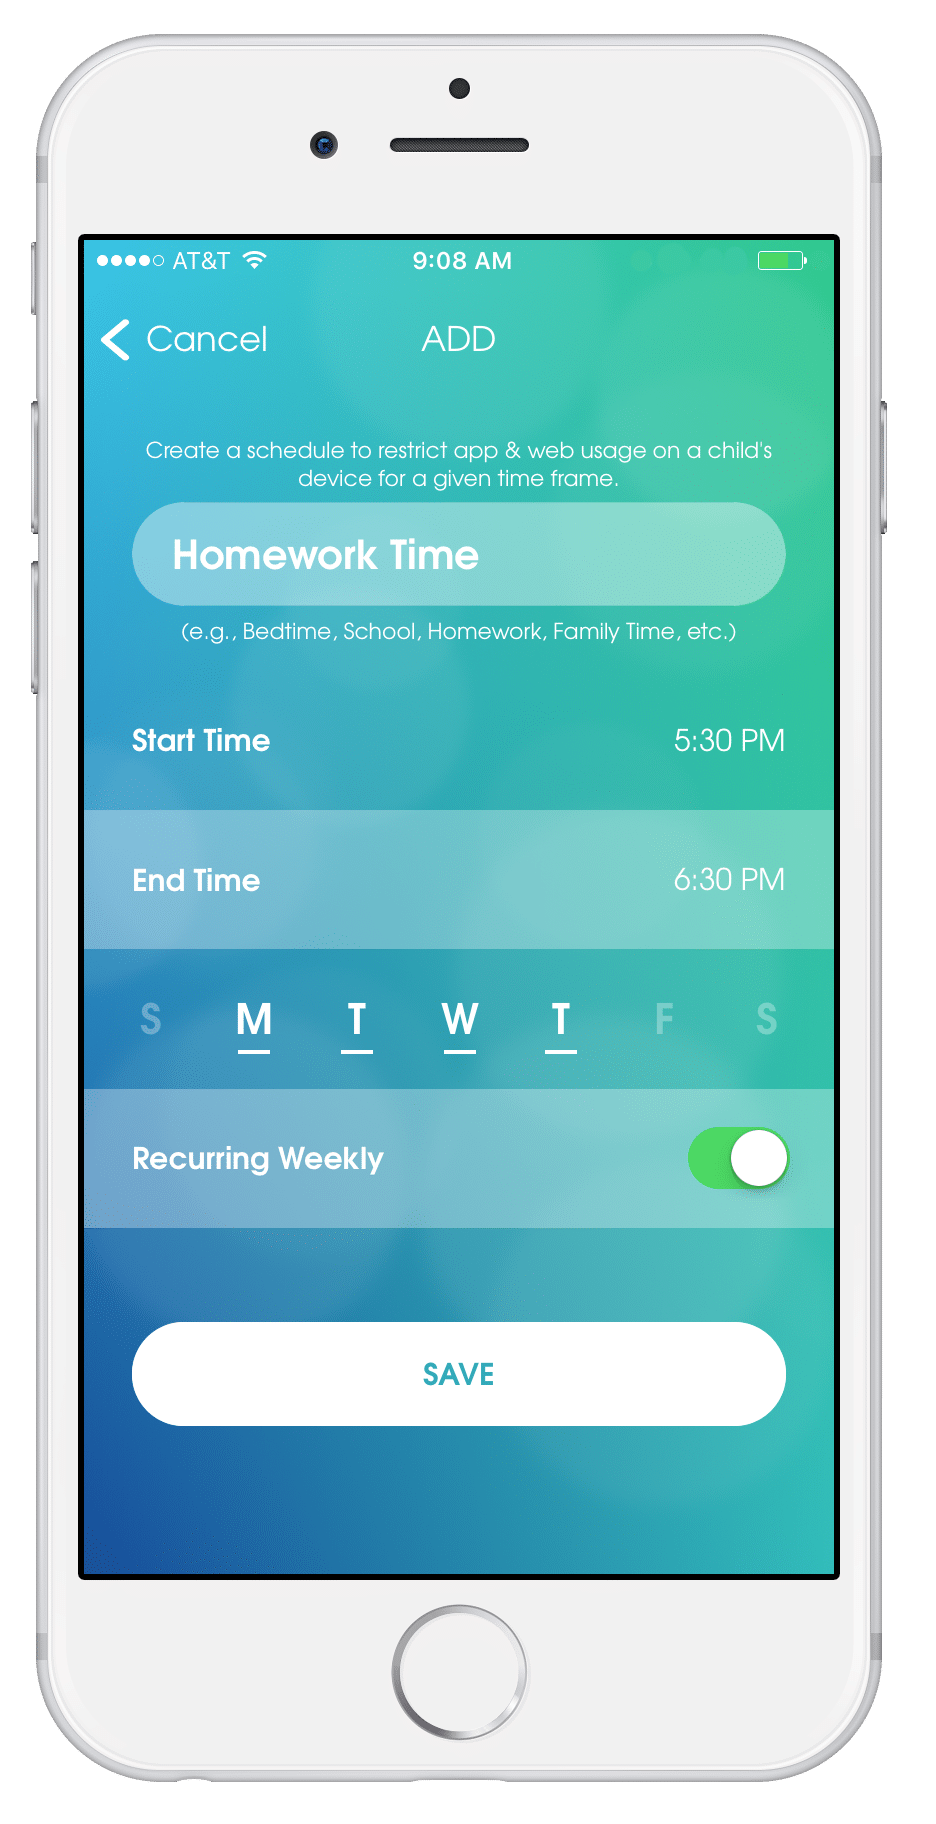 OurPact - Teaching Responsibility Through Technology, a parental control app to help regulate online usage for children, including rewards, ability to block usage, schedules, how to deal with bullies and more